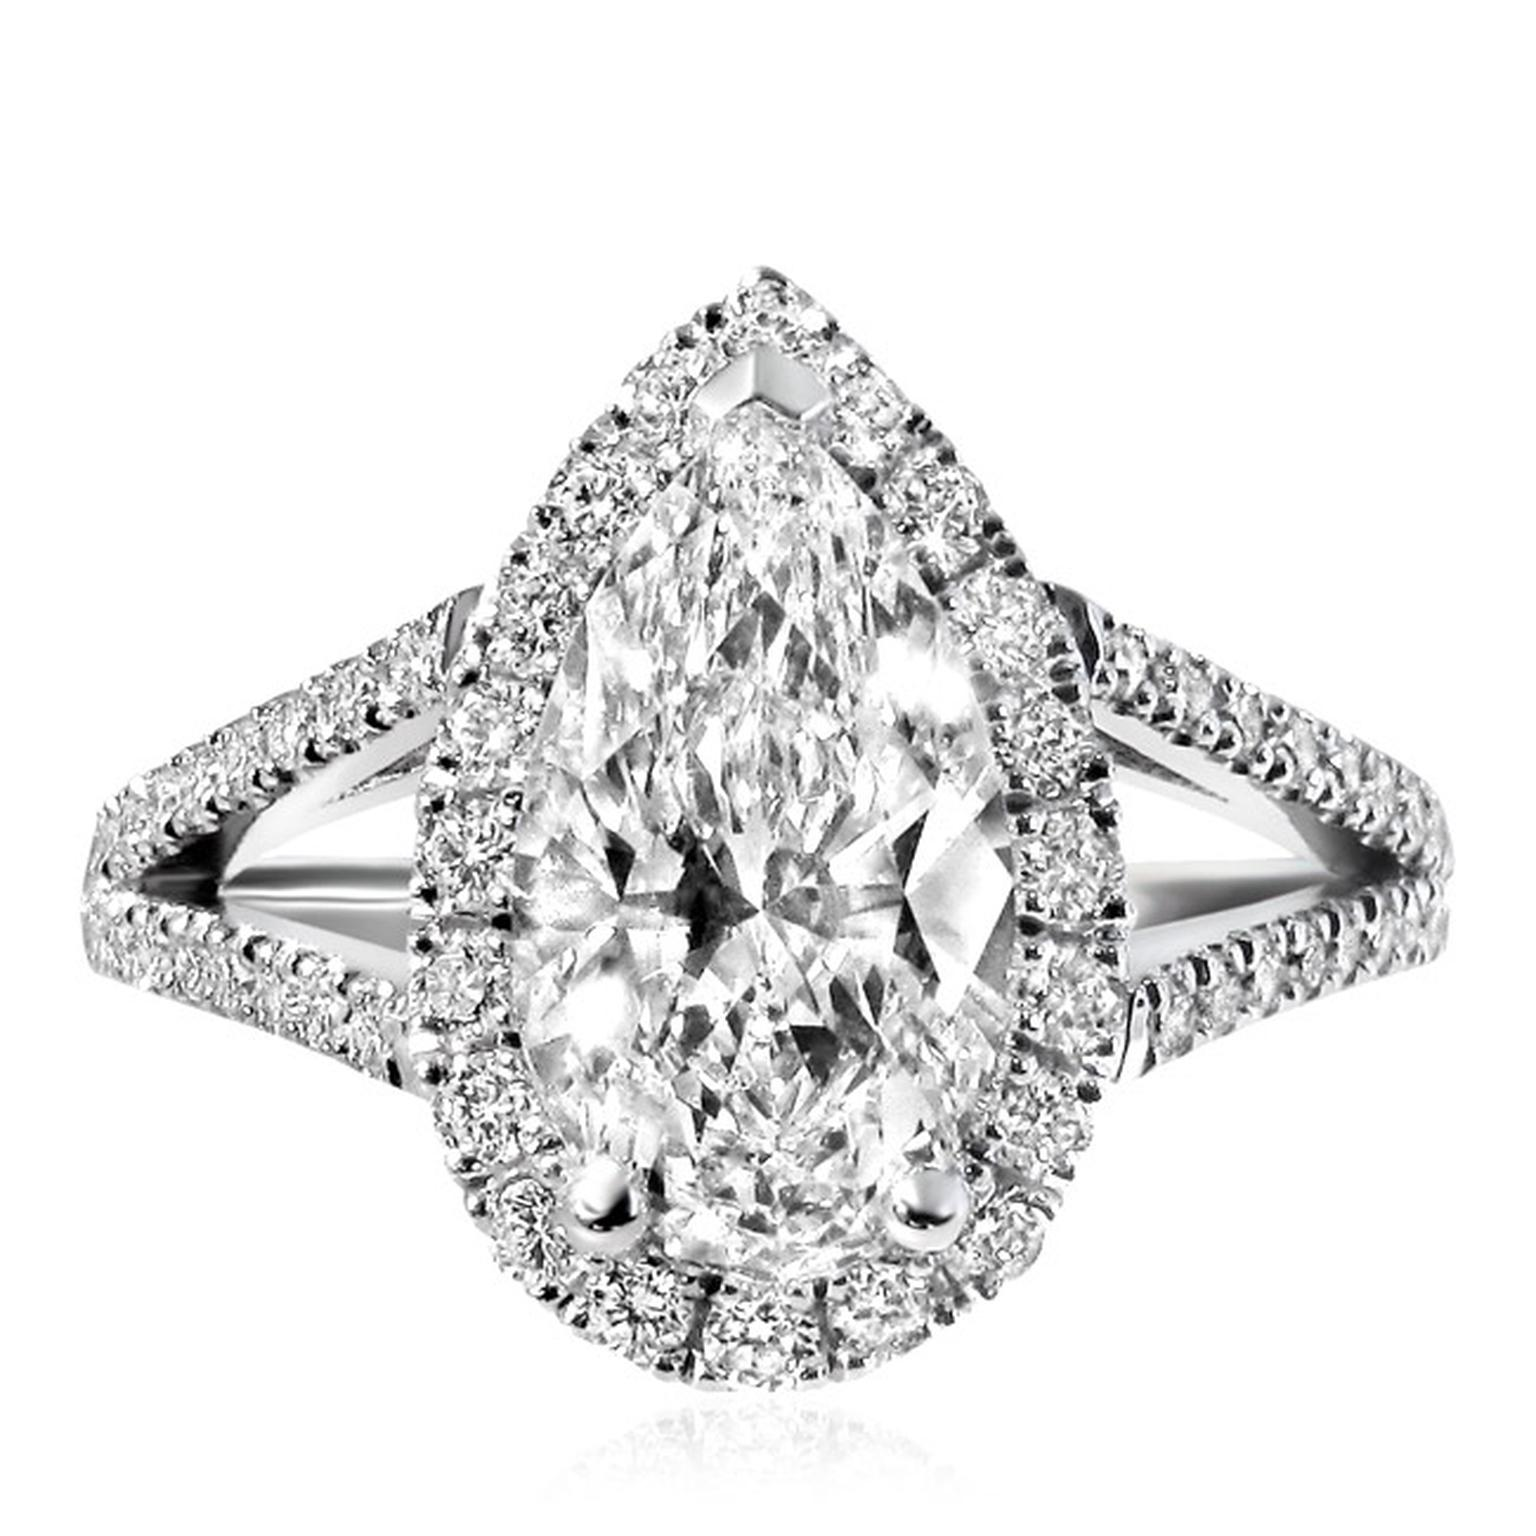 IR-Pear-Cut-Ring-main